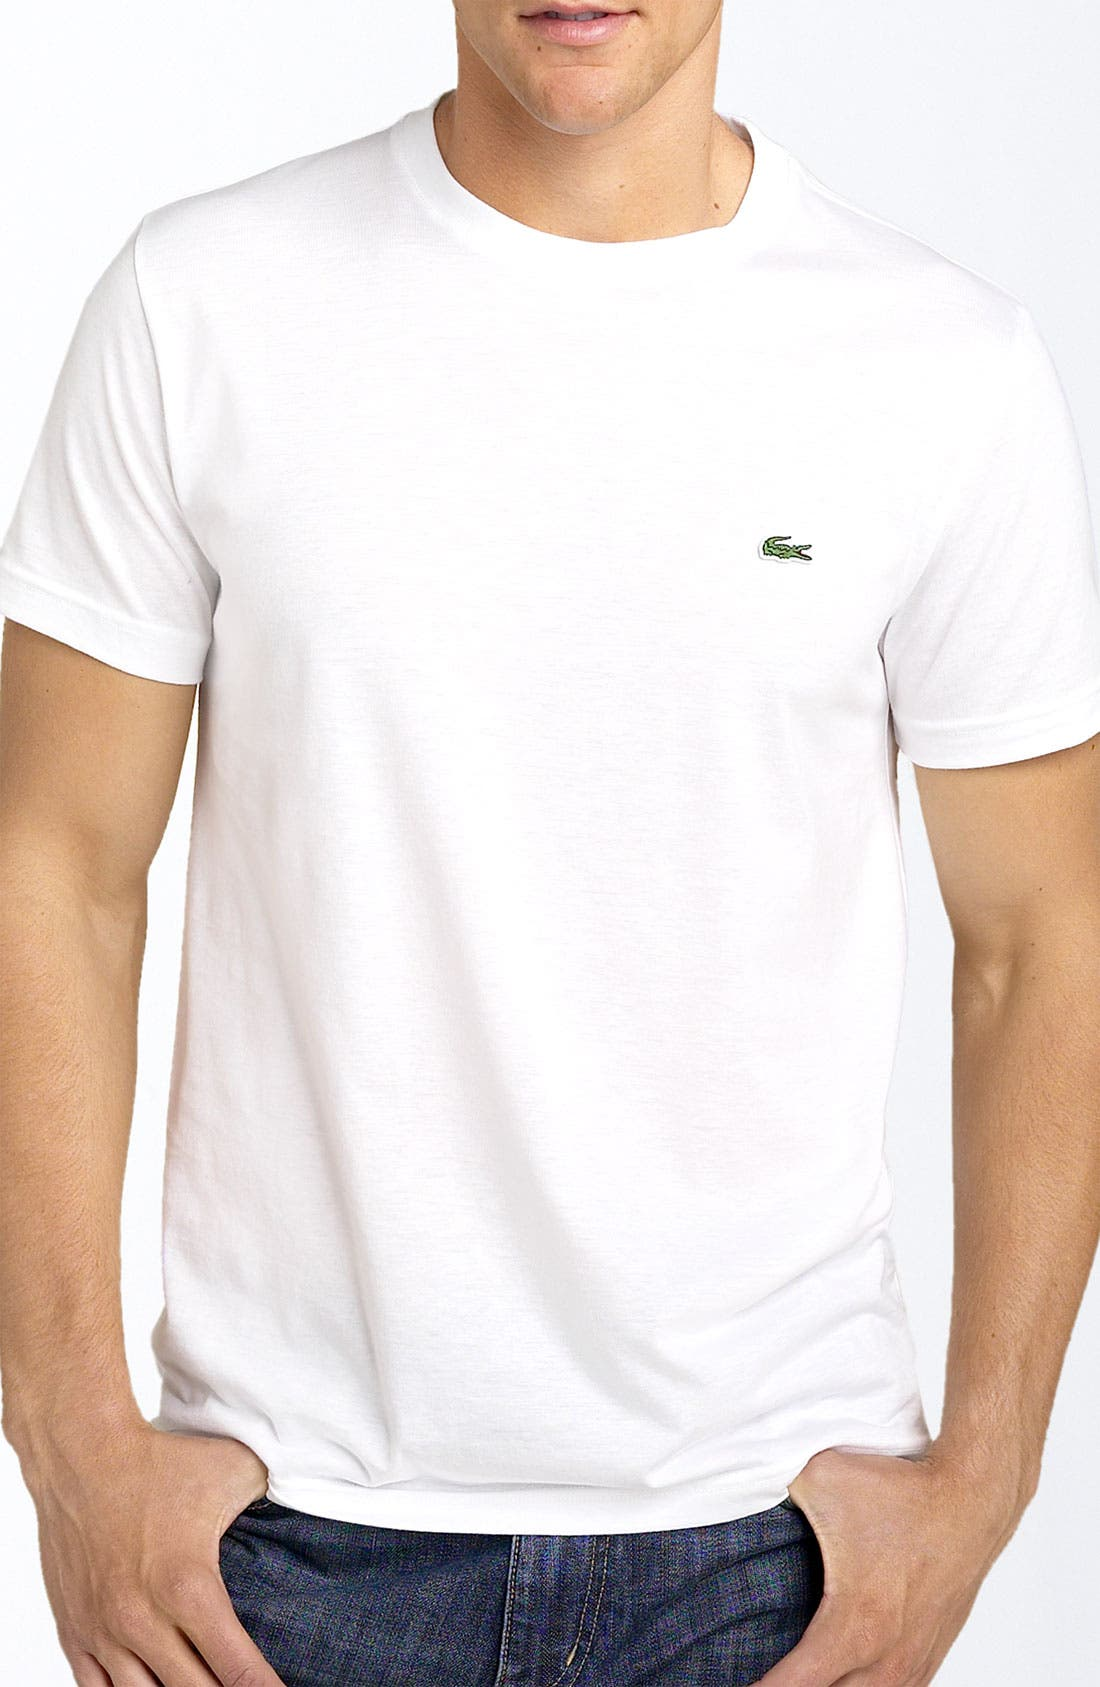 Main Image - Lacoste Cotton T-Shirt (Tall)